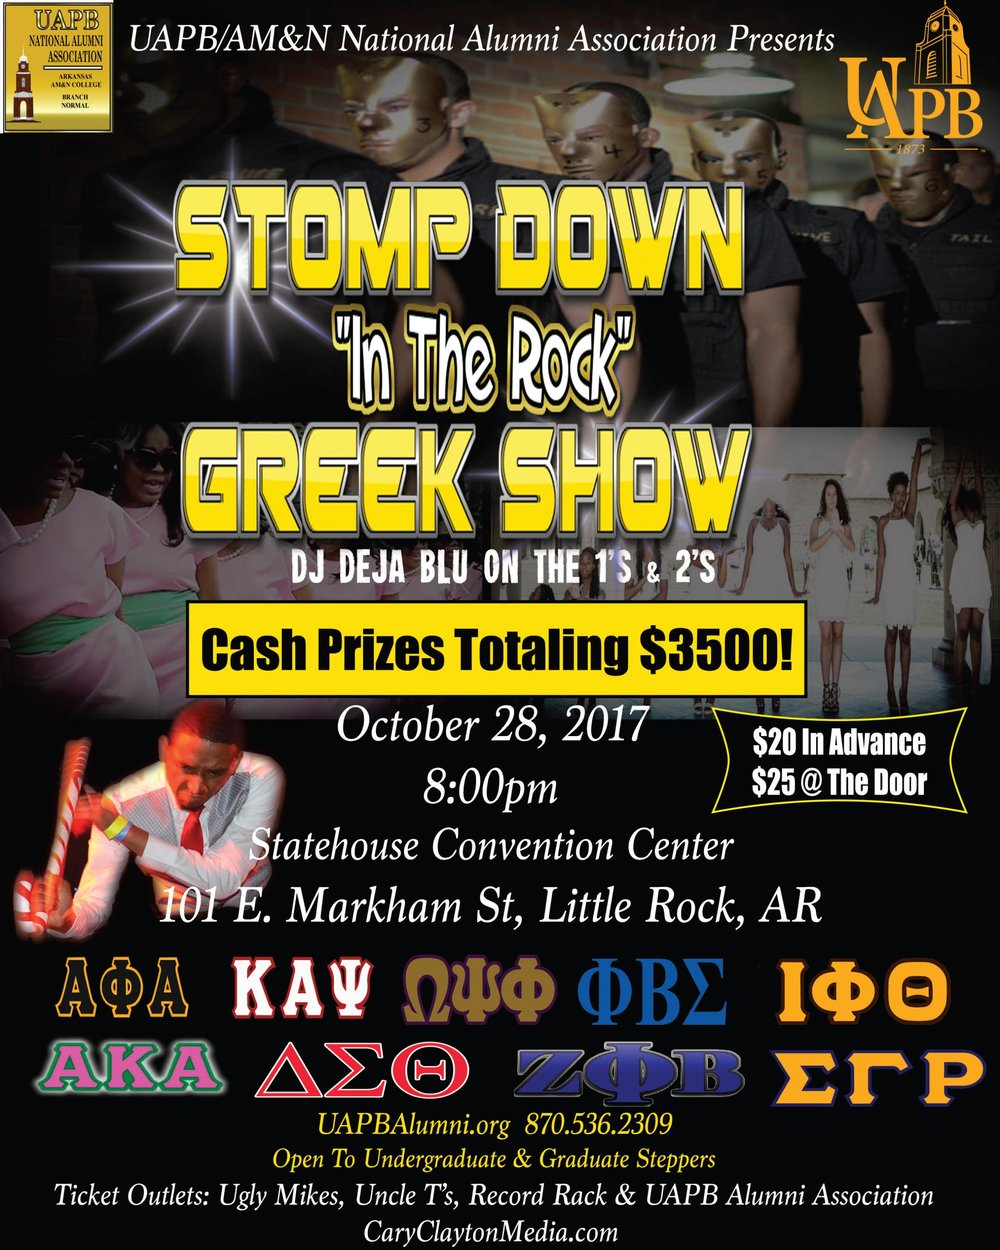 Stomp Down In the Rock Greek Show.jpg